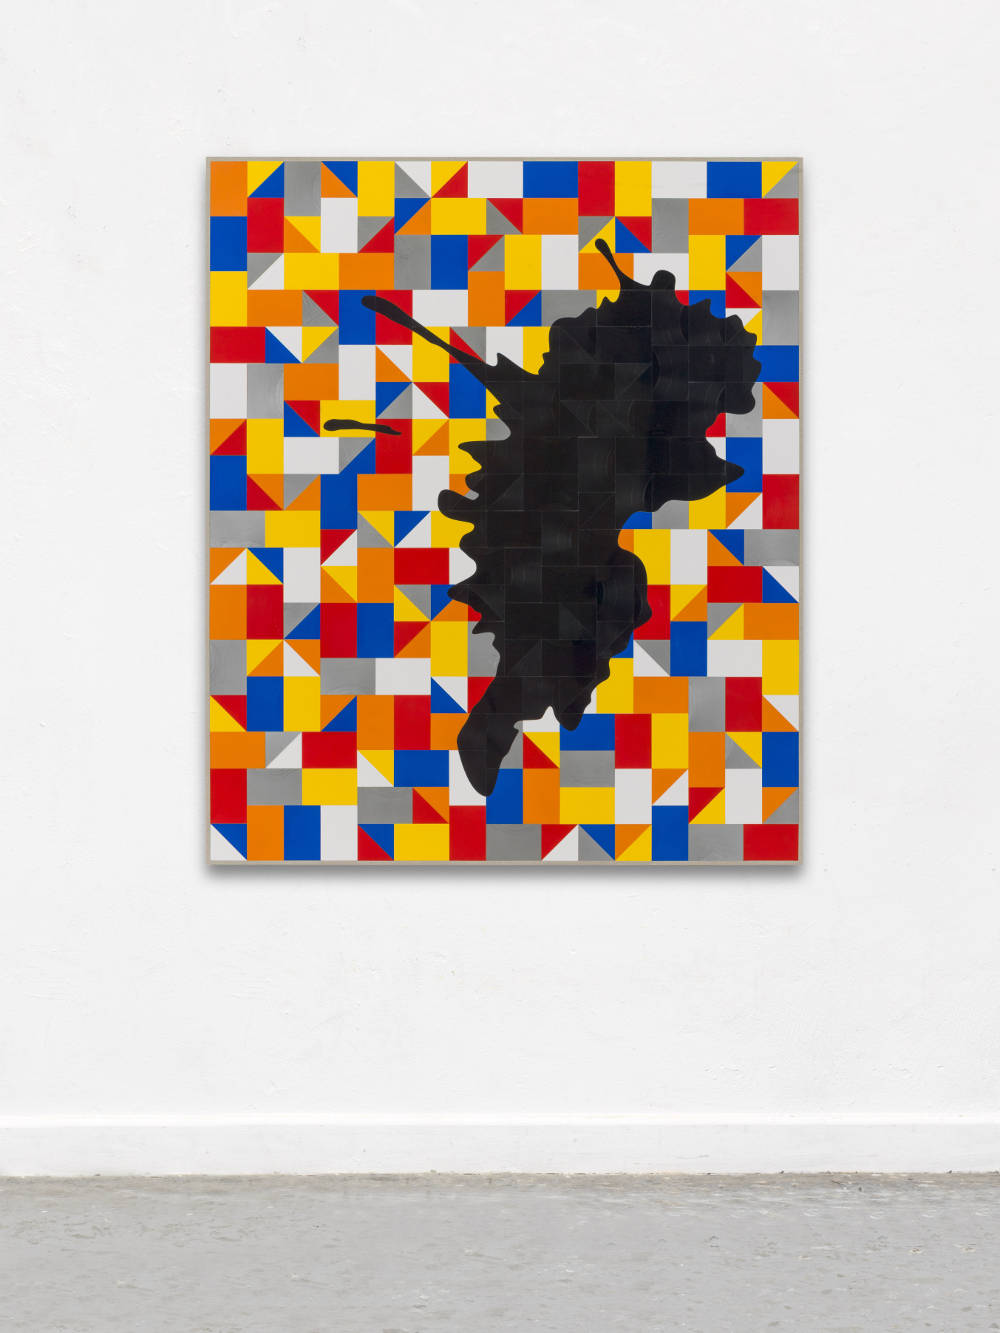 Gregor Hildebrandt, And I laugh as I drift in the wind (schwarze Sound Explosion), 2018. Cut vinyl records, acrylic, canvas, wood 154 x 130 cm, 60.6 x 11.8 in. Courtesy of the artist and Perrotin.